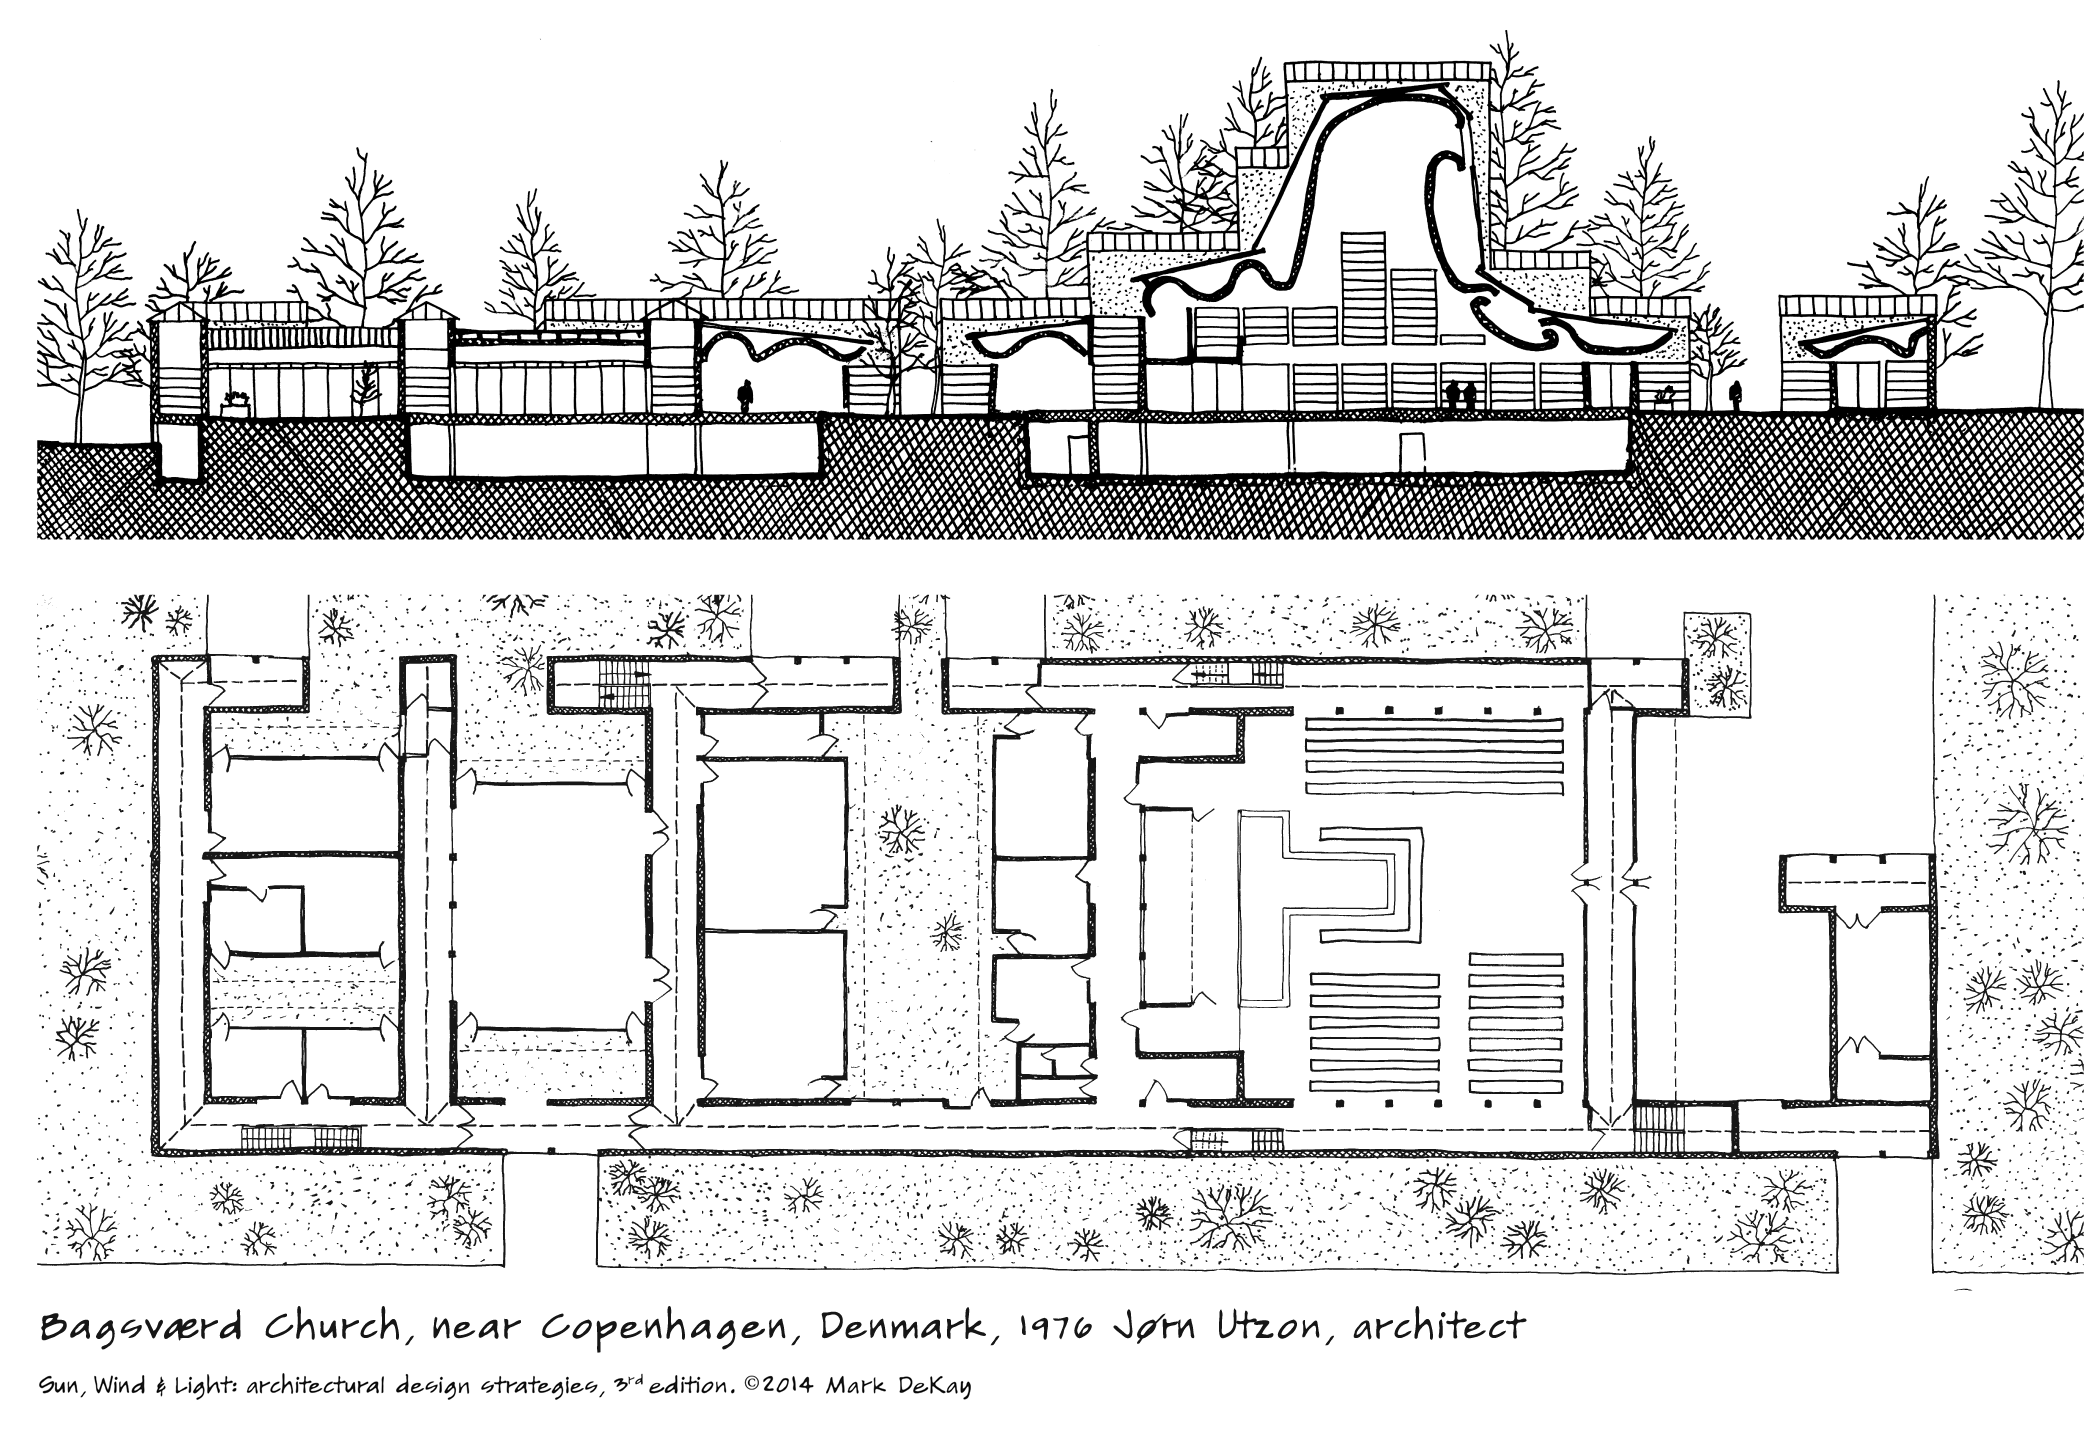 p155 Bagsvaerd Church Section and Plan